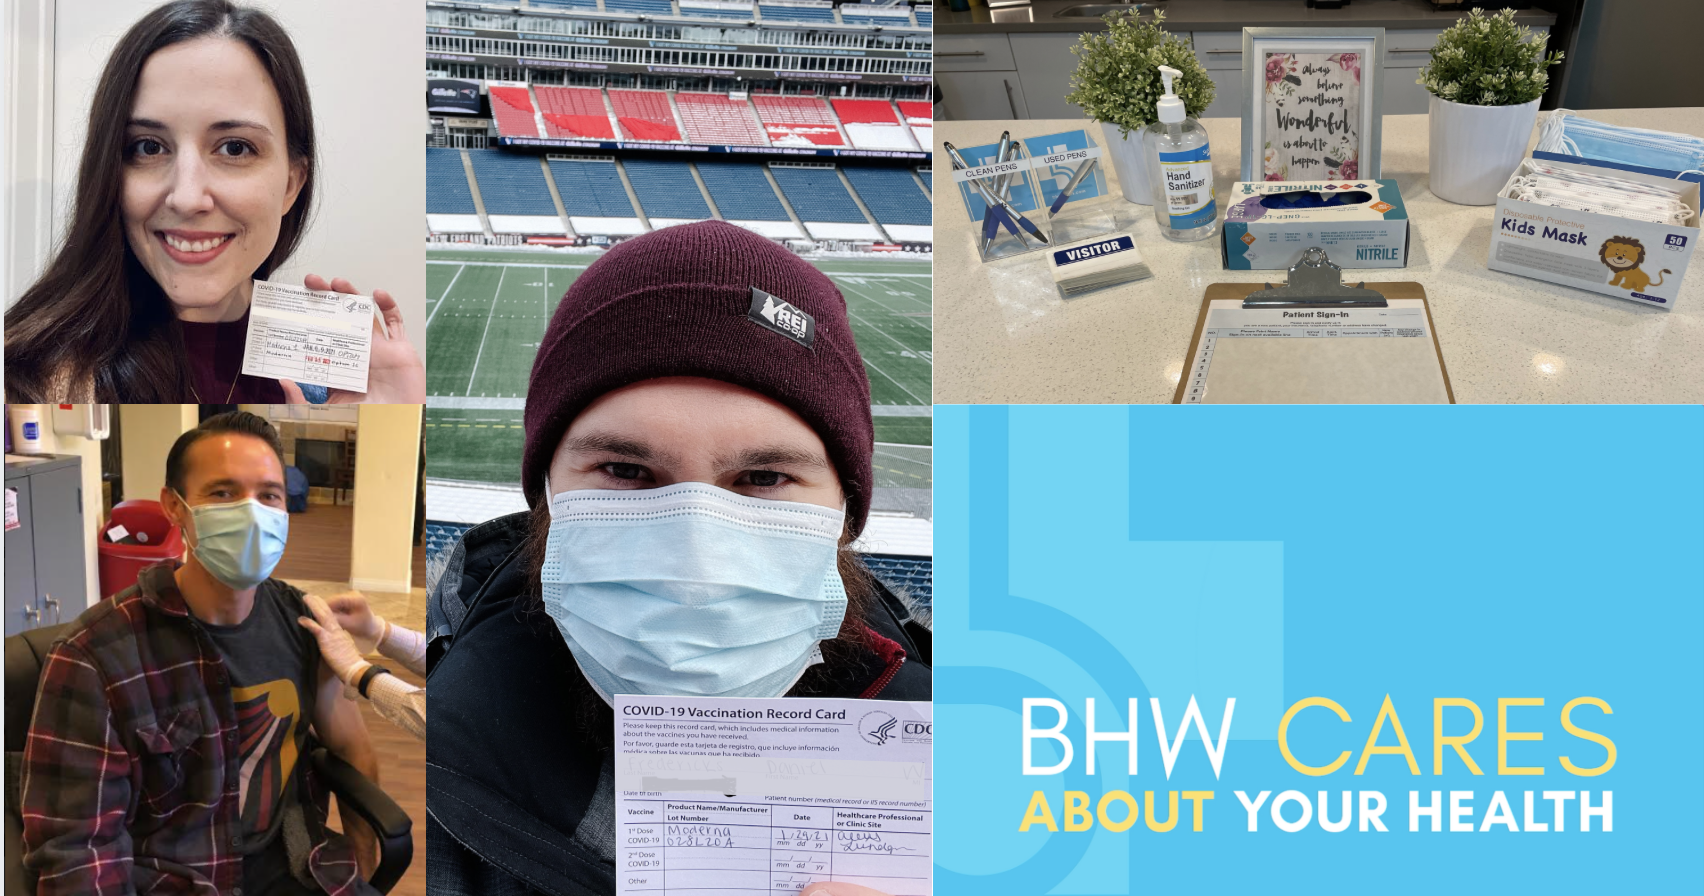 BHW Cares About Your Health